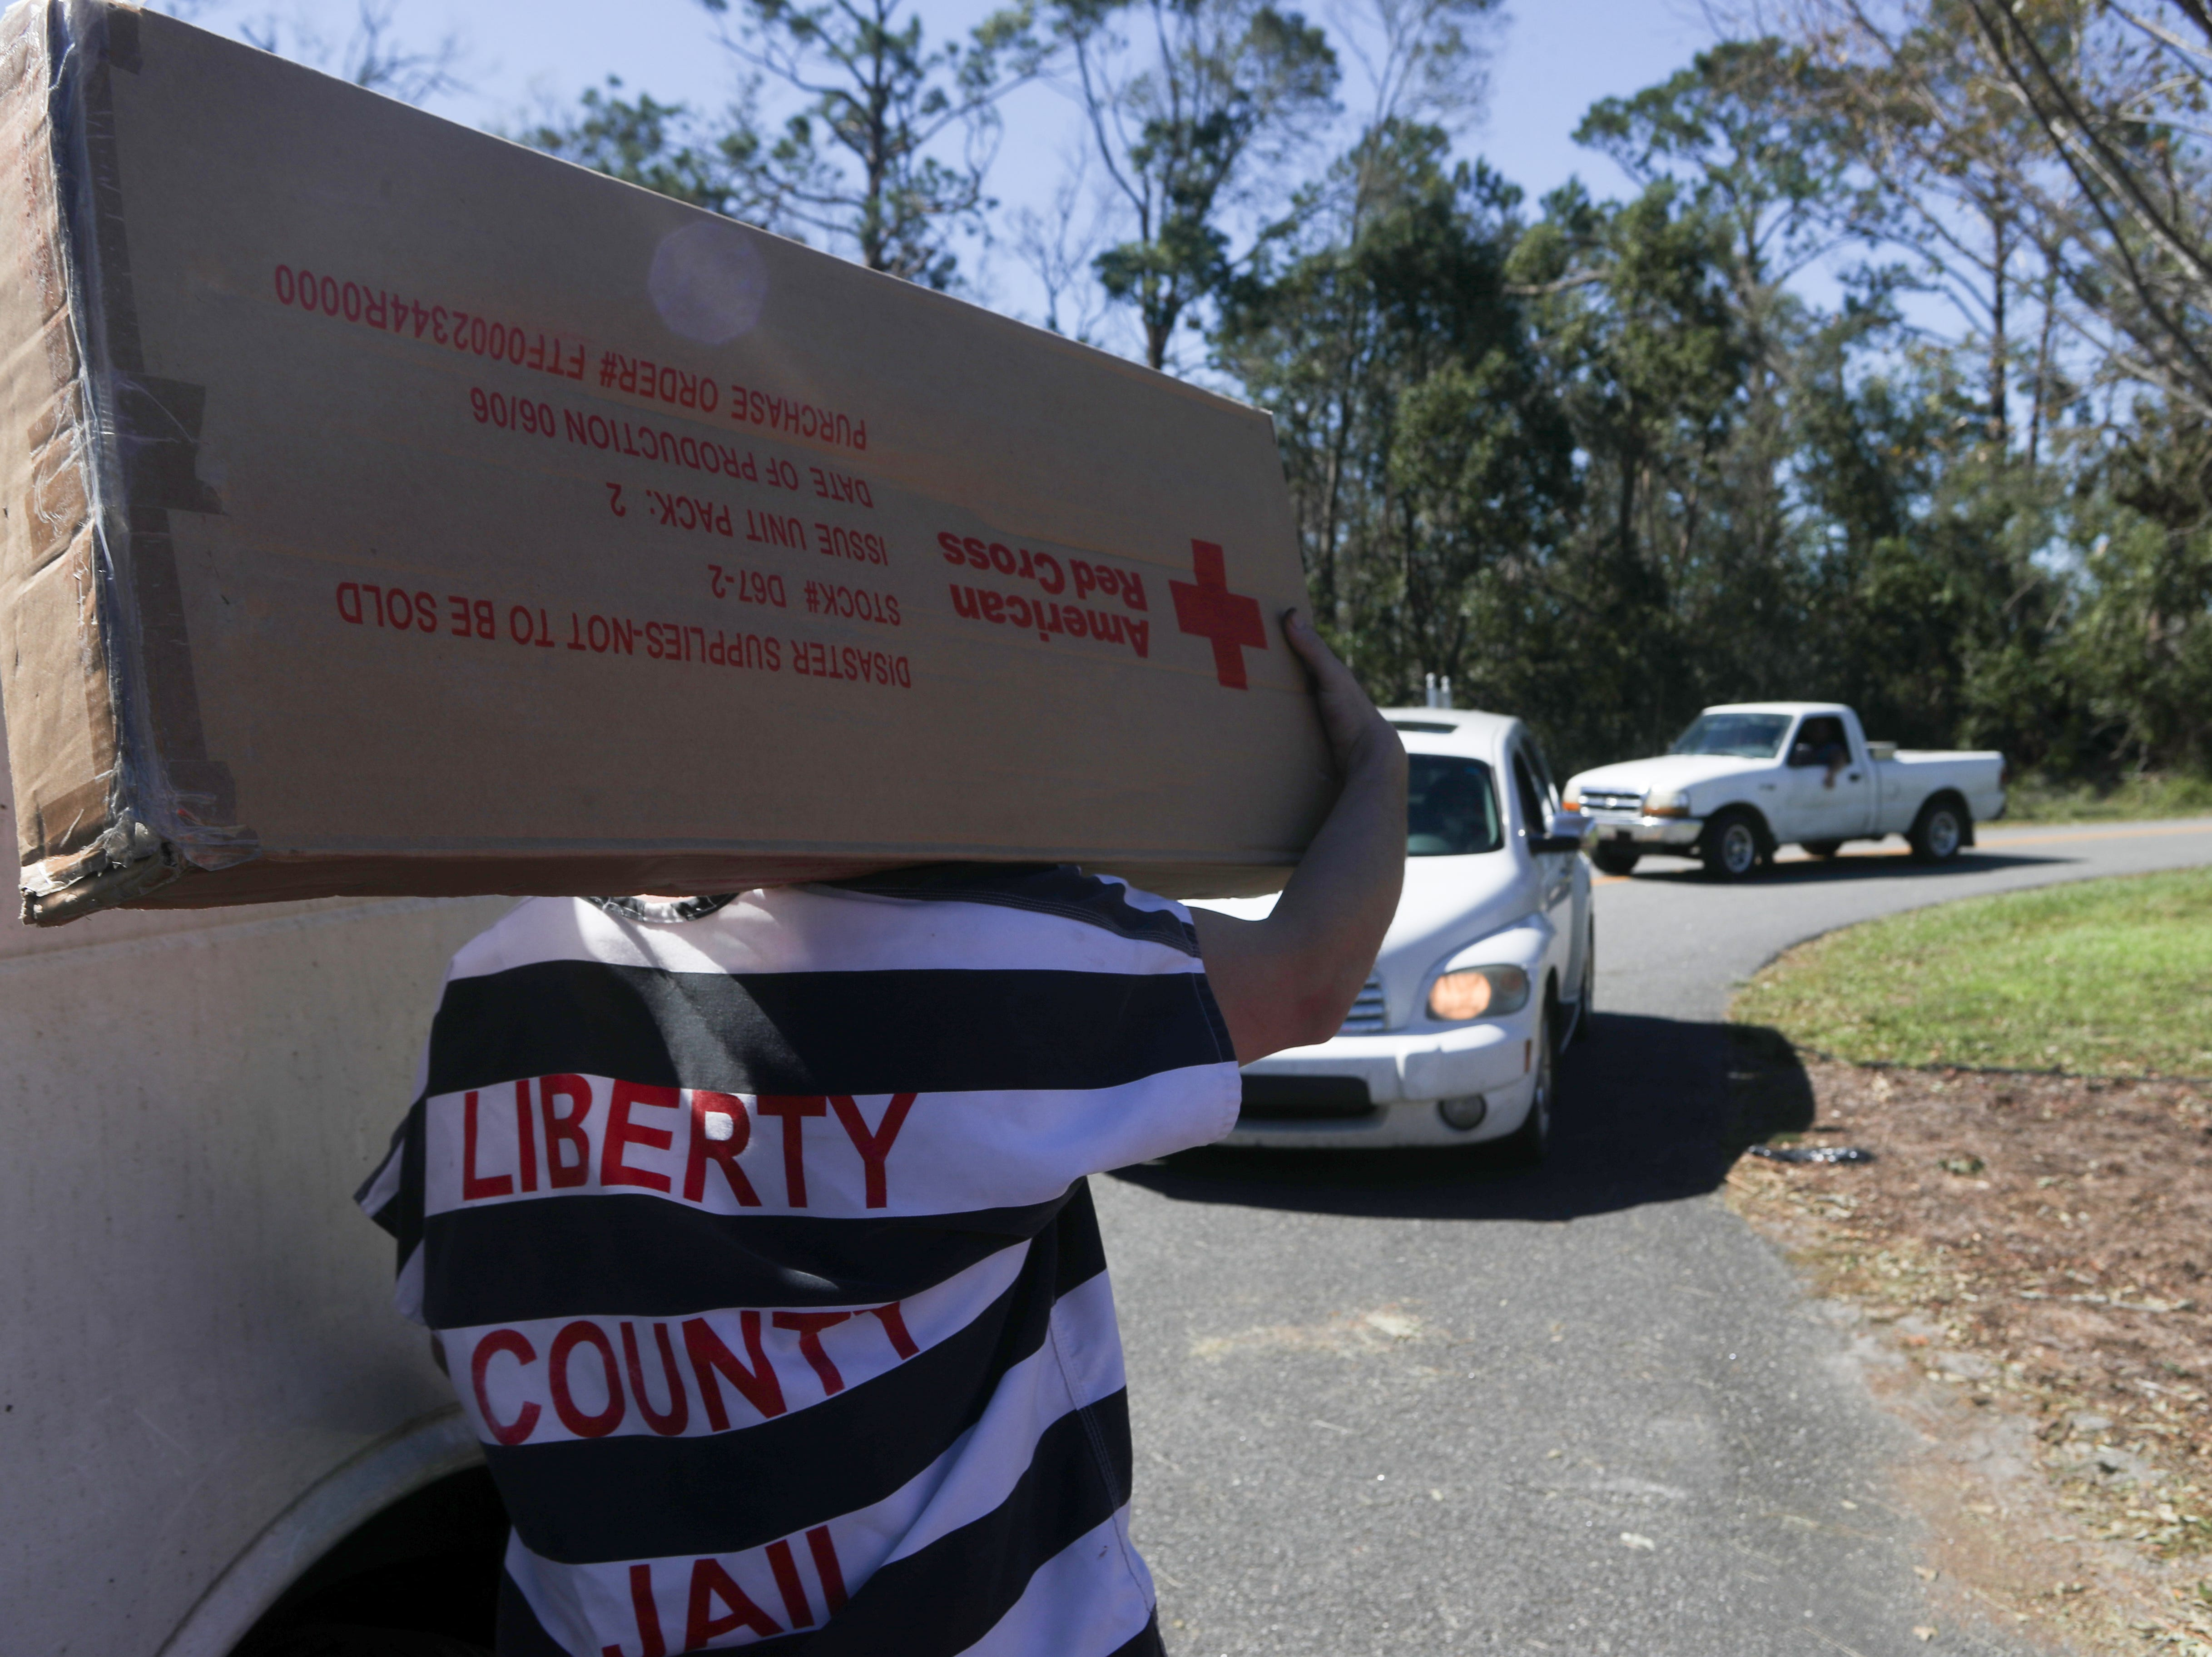 Liberty County jail inmates help distribute American Red Cross cots and blankets at the Liberty County Emergency Operations Center in Bristol, Fla. in the aftermath of Hurricane Michael Friday, Oct. 12, 2018.